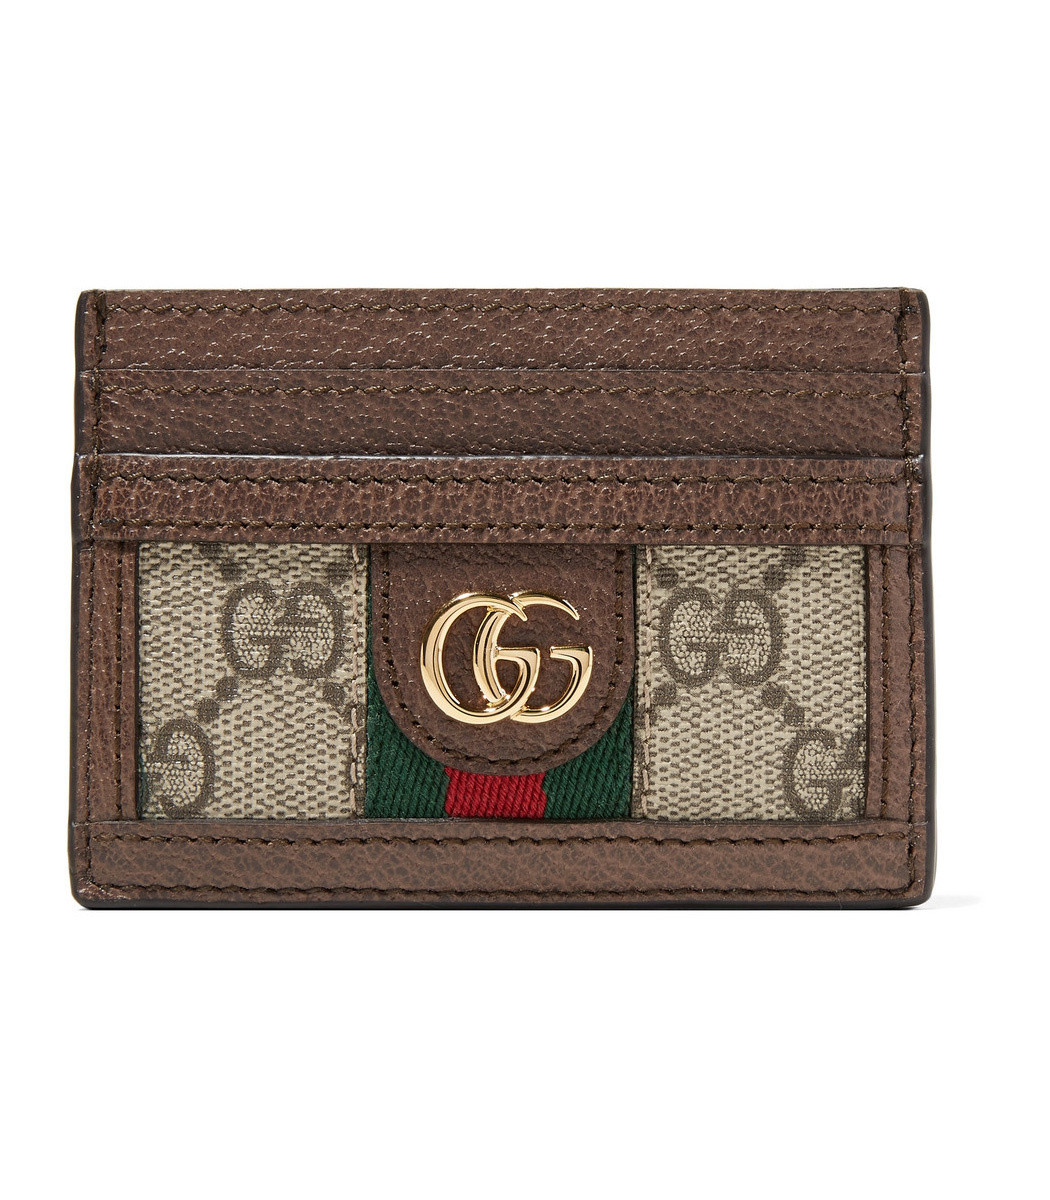 af467bab9fb Home   Gucci   Ophidia Textured Leather-Trimmed Printed Coated-Canvas  Cardholder. prev